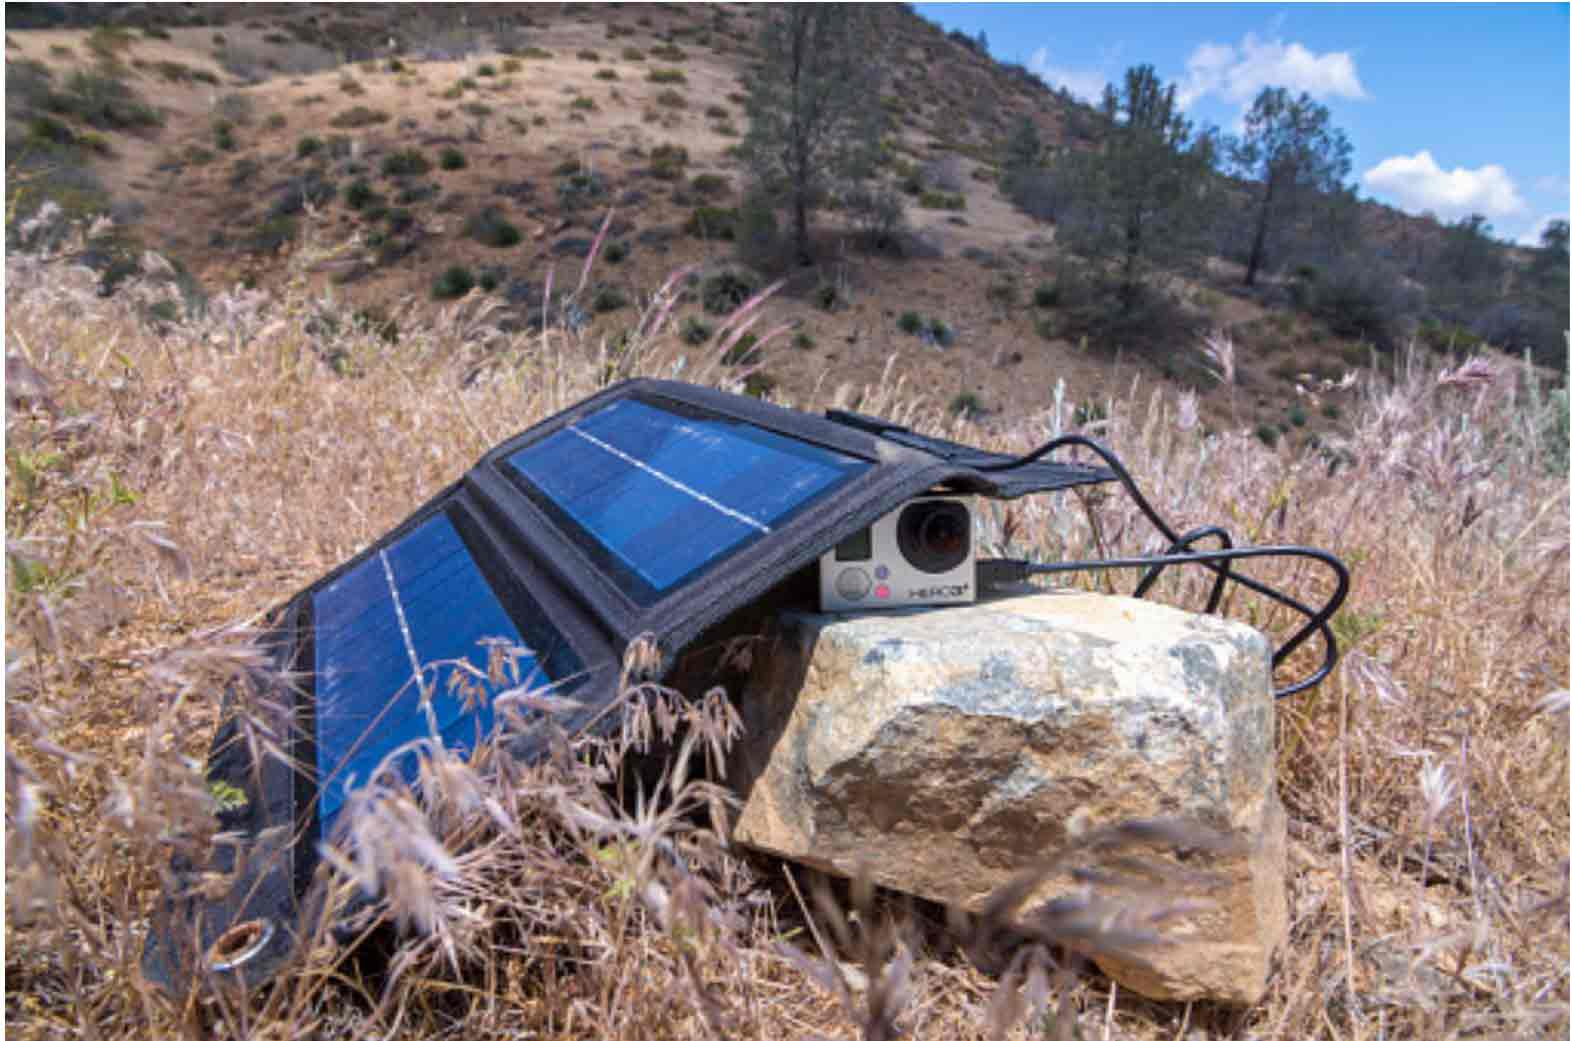 10 Things to Look for When Choosing a Portable Solar Charger